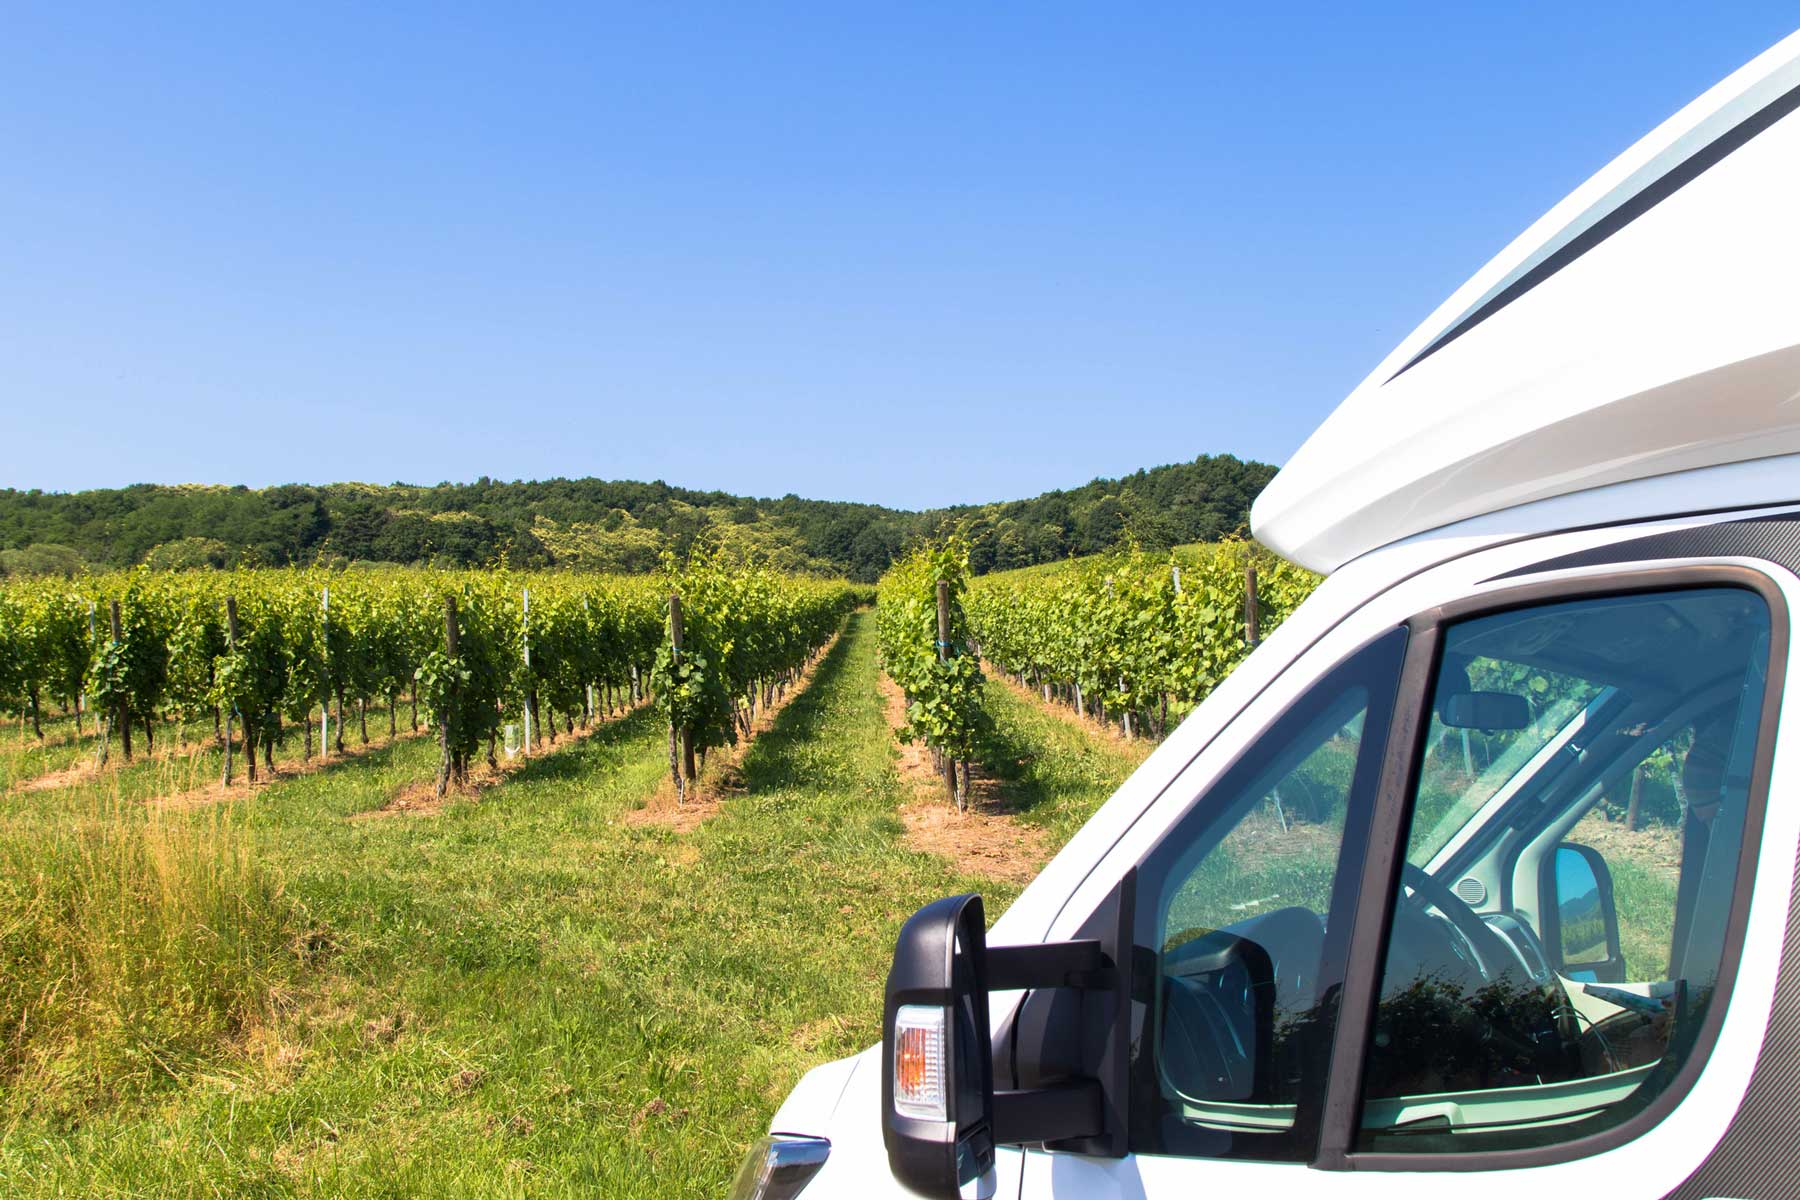 RV Camper parked in front of a vineyard on a sunny day